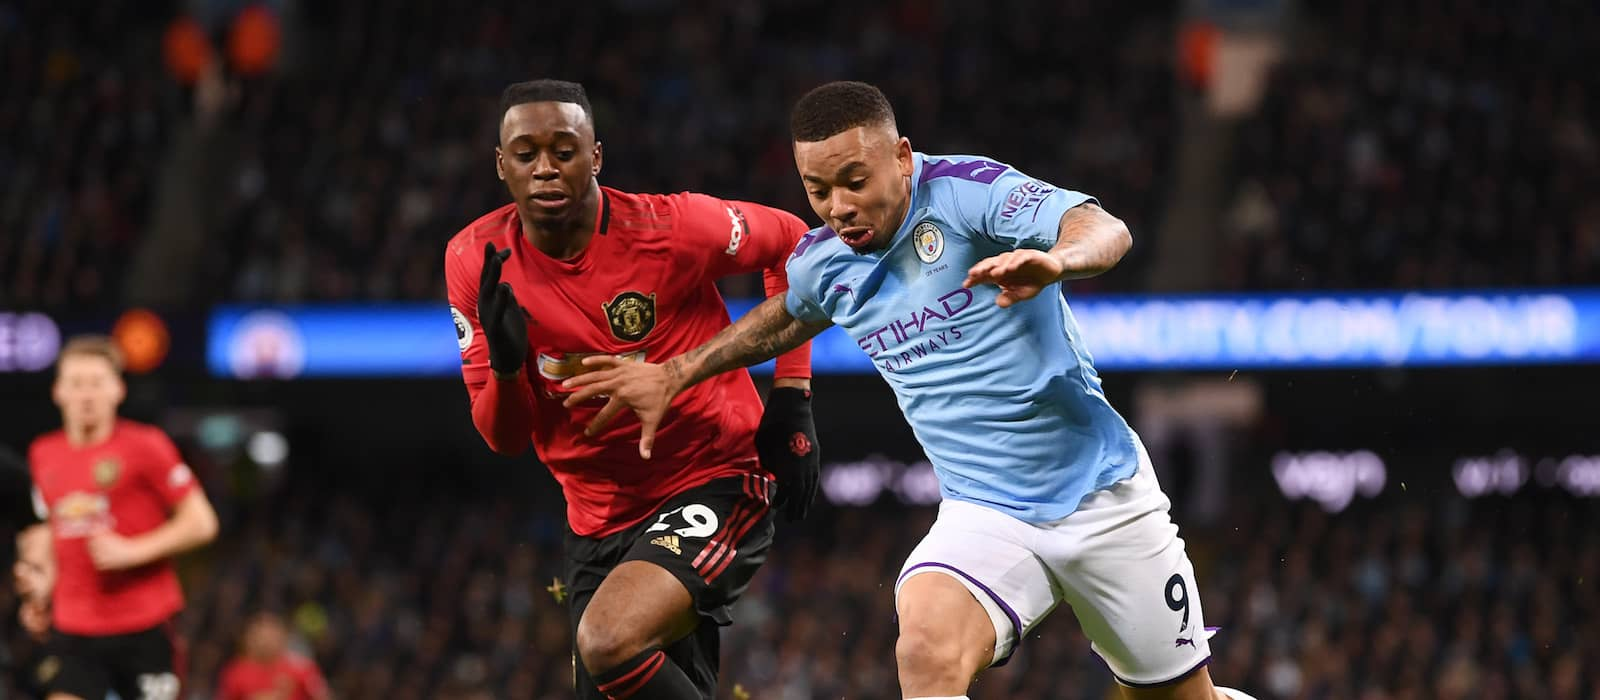 Martin Keown claims Manchester United's Aaron Wan-Bissaka is the best